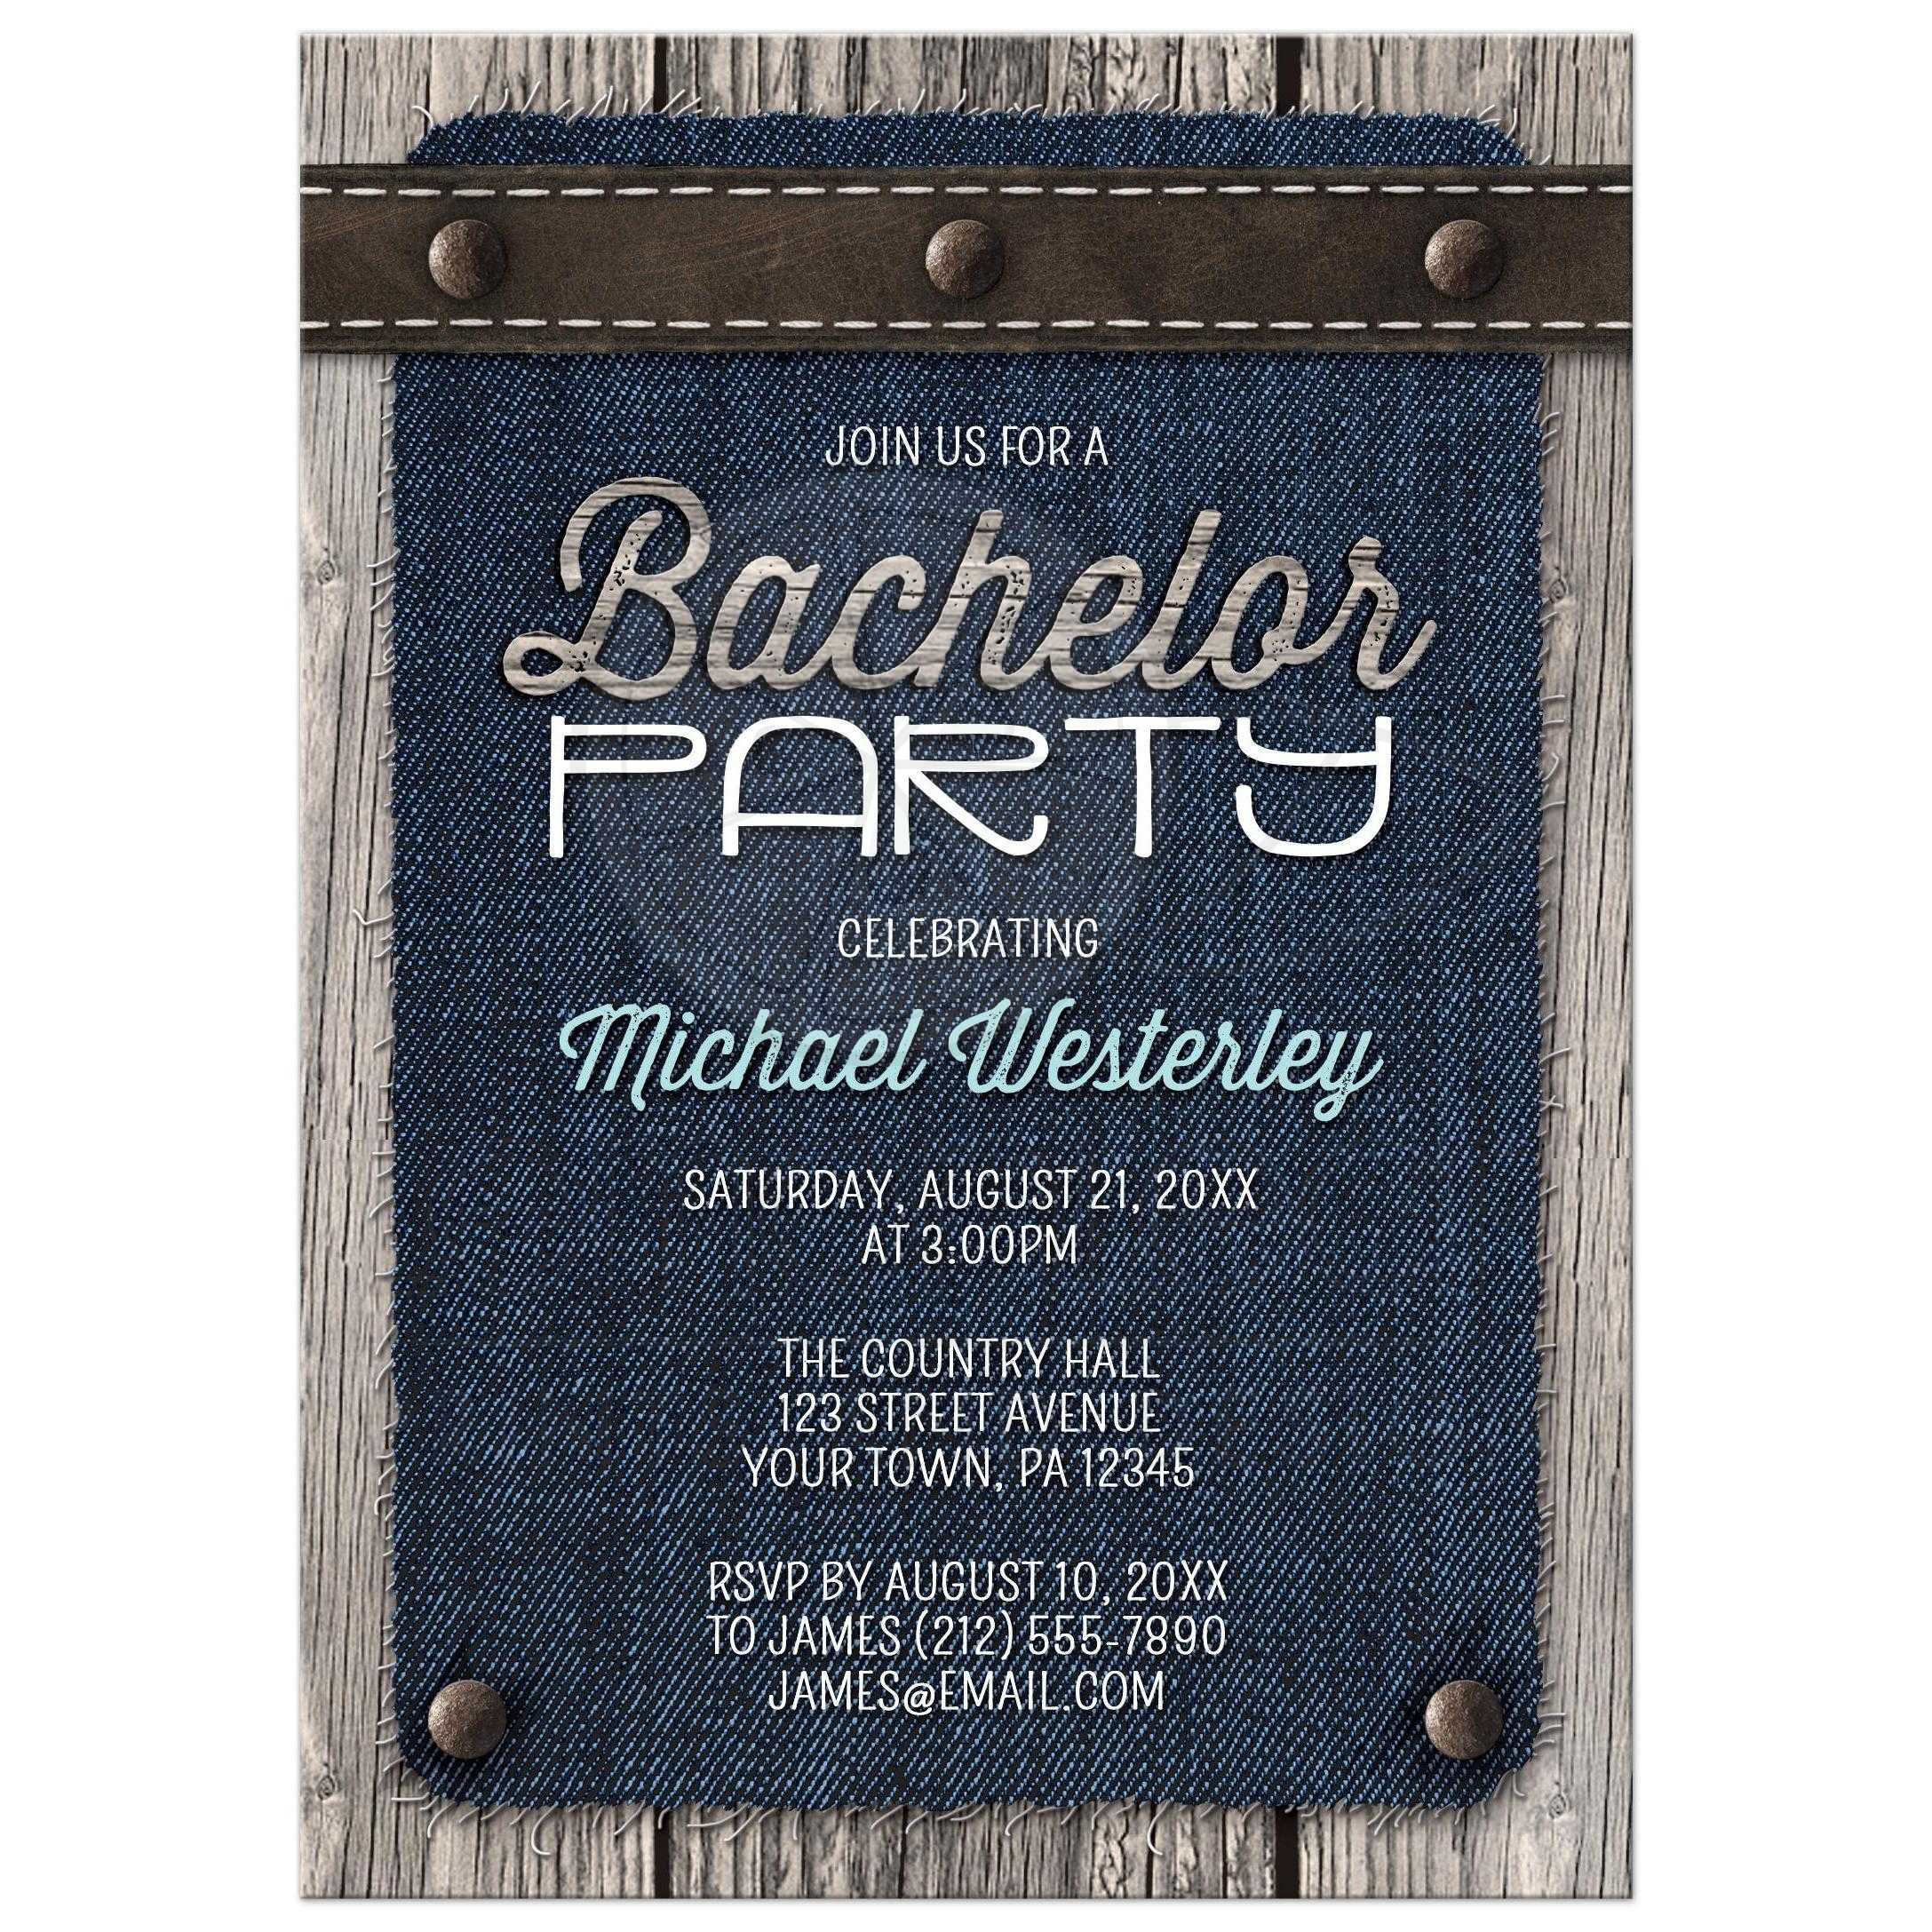 Graduation Invitation Wording for adorable invitation ideas